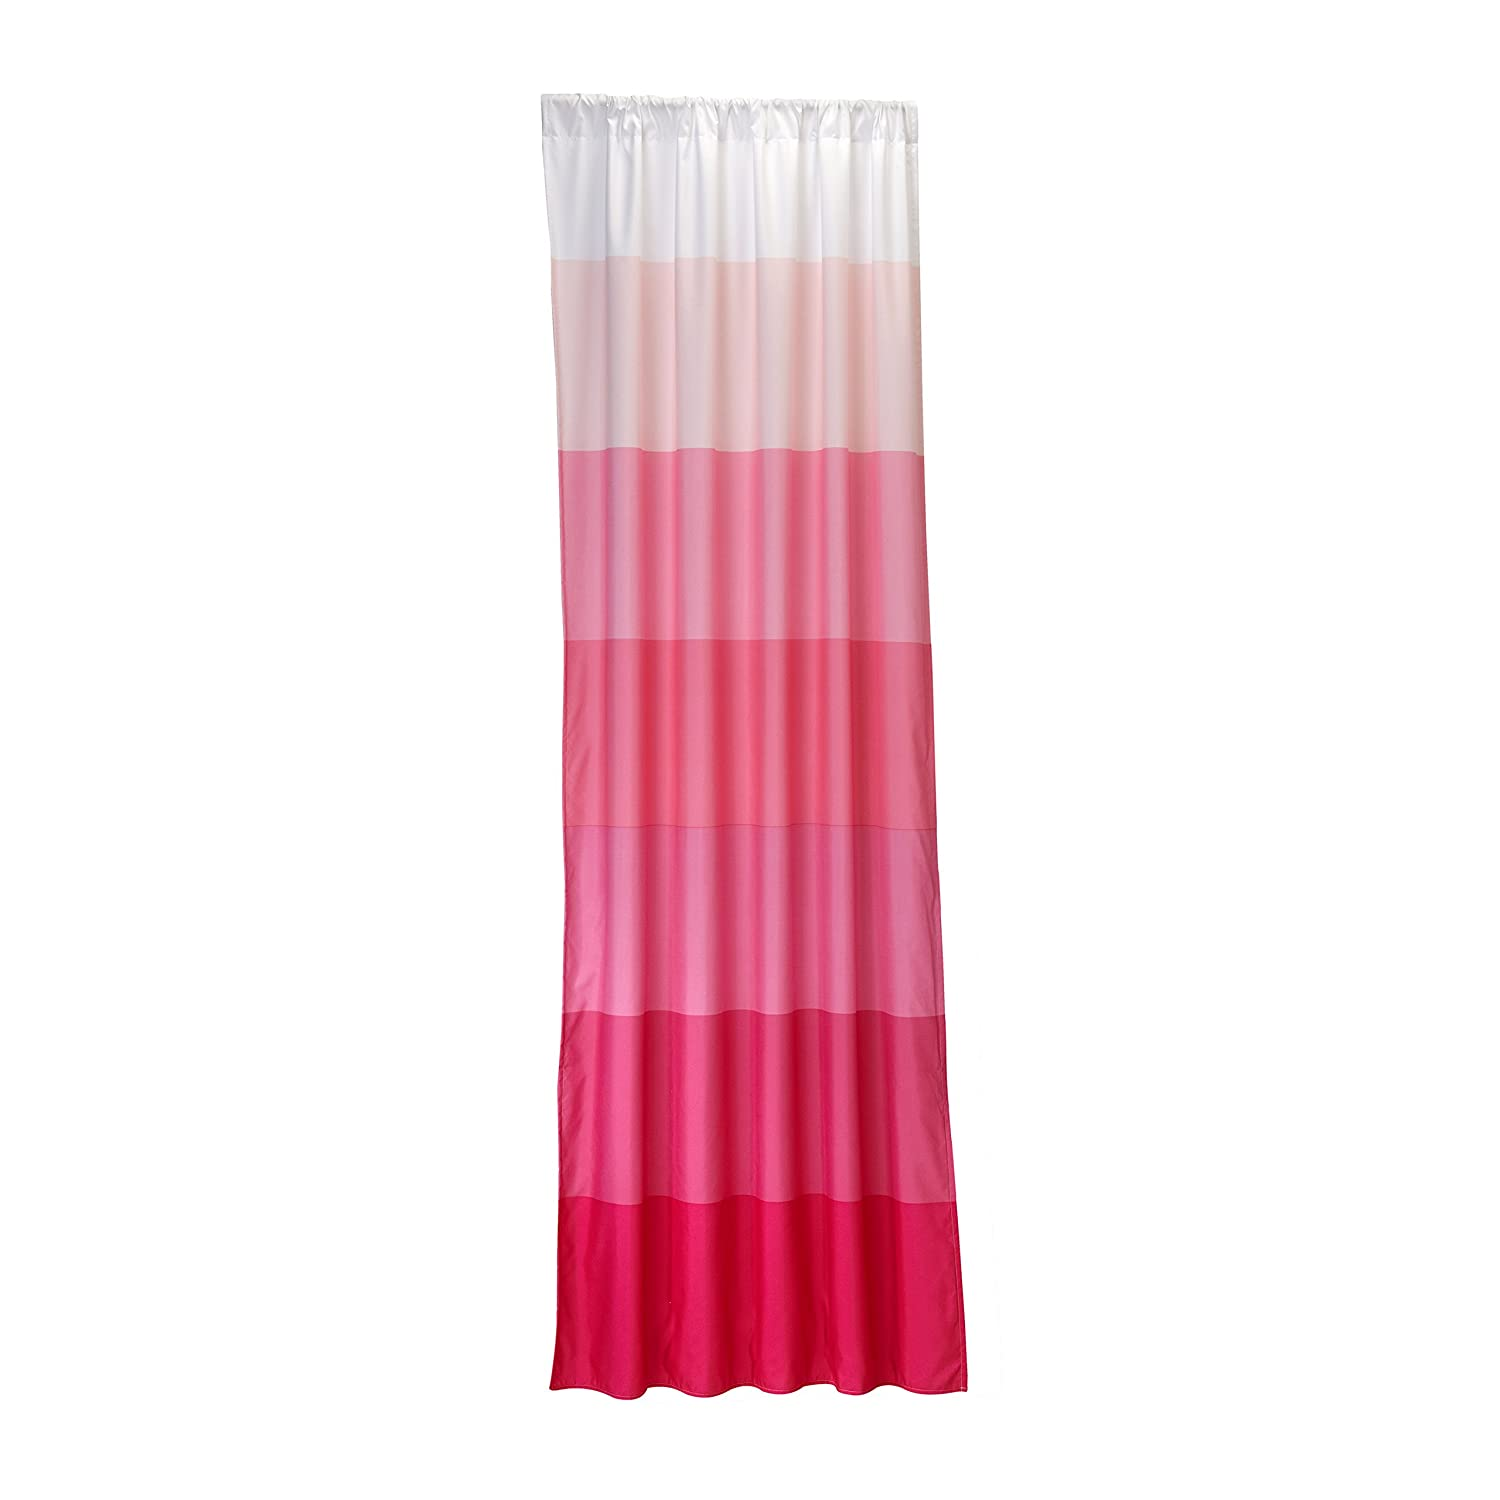 Little Bedding Ombre Window Panel, Pink Little Bedding By NoJo 3783175